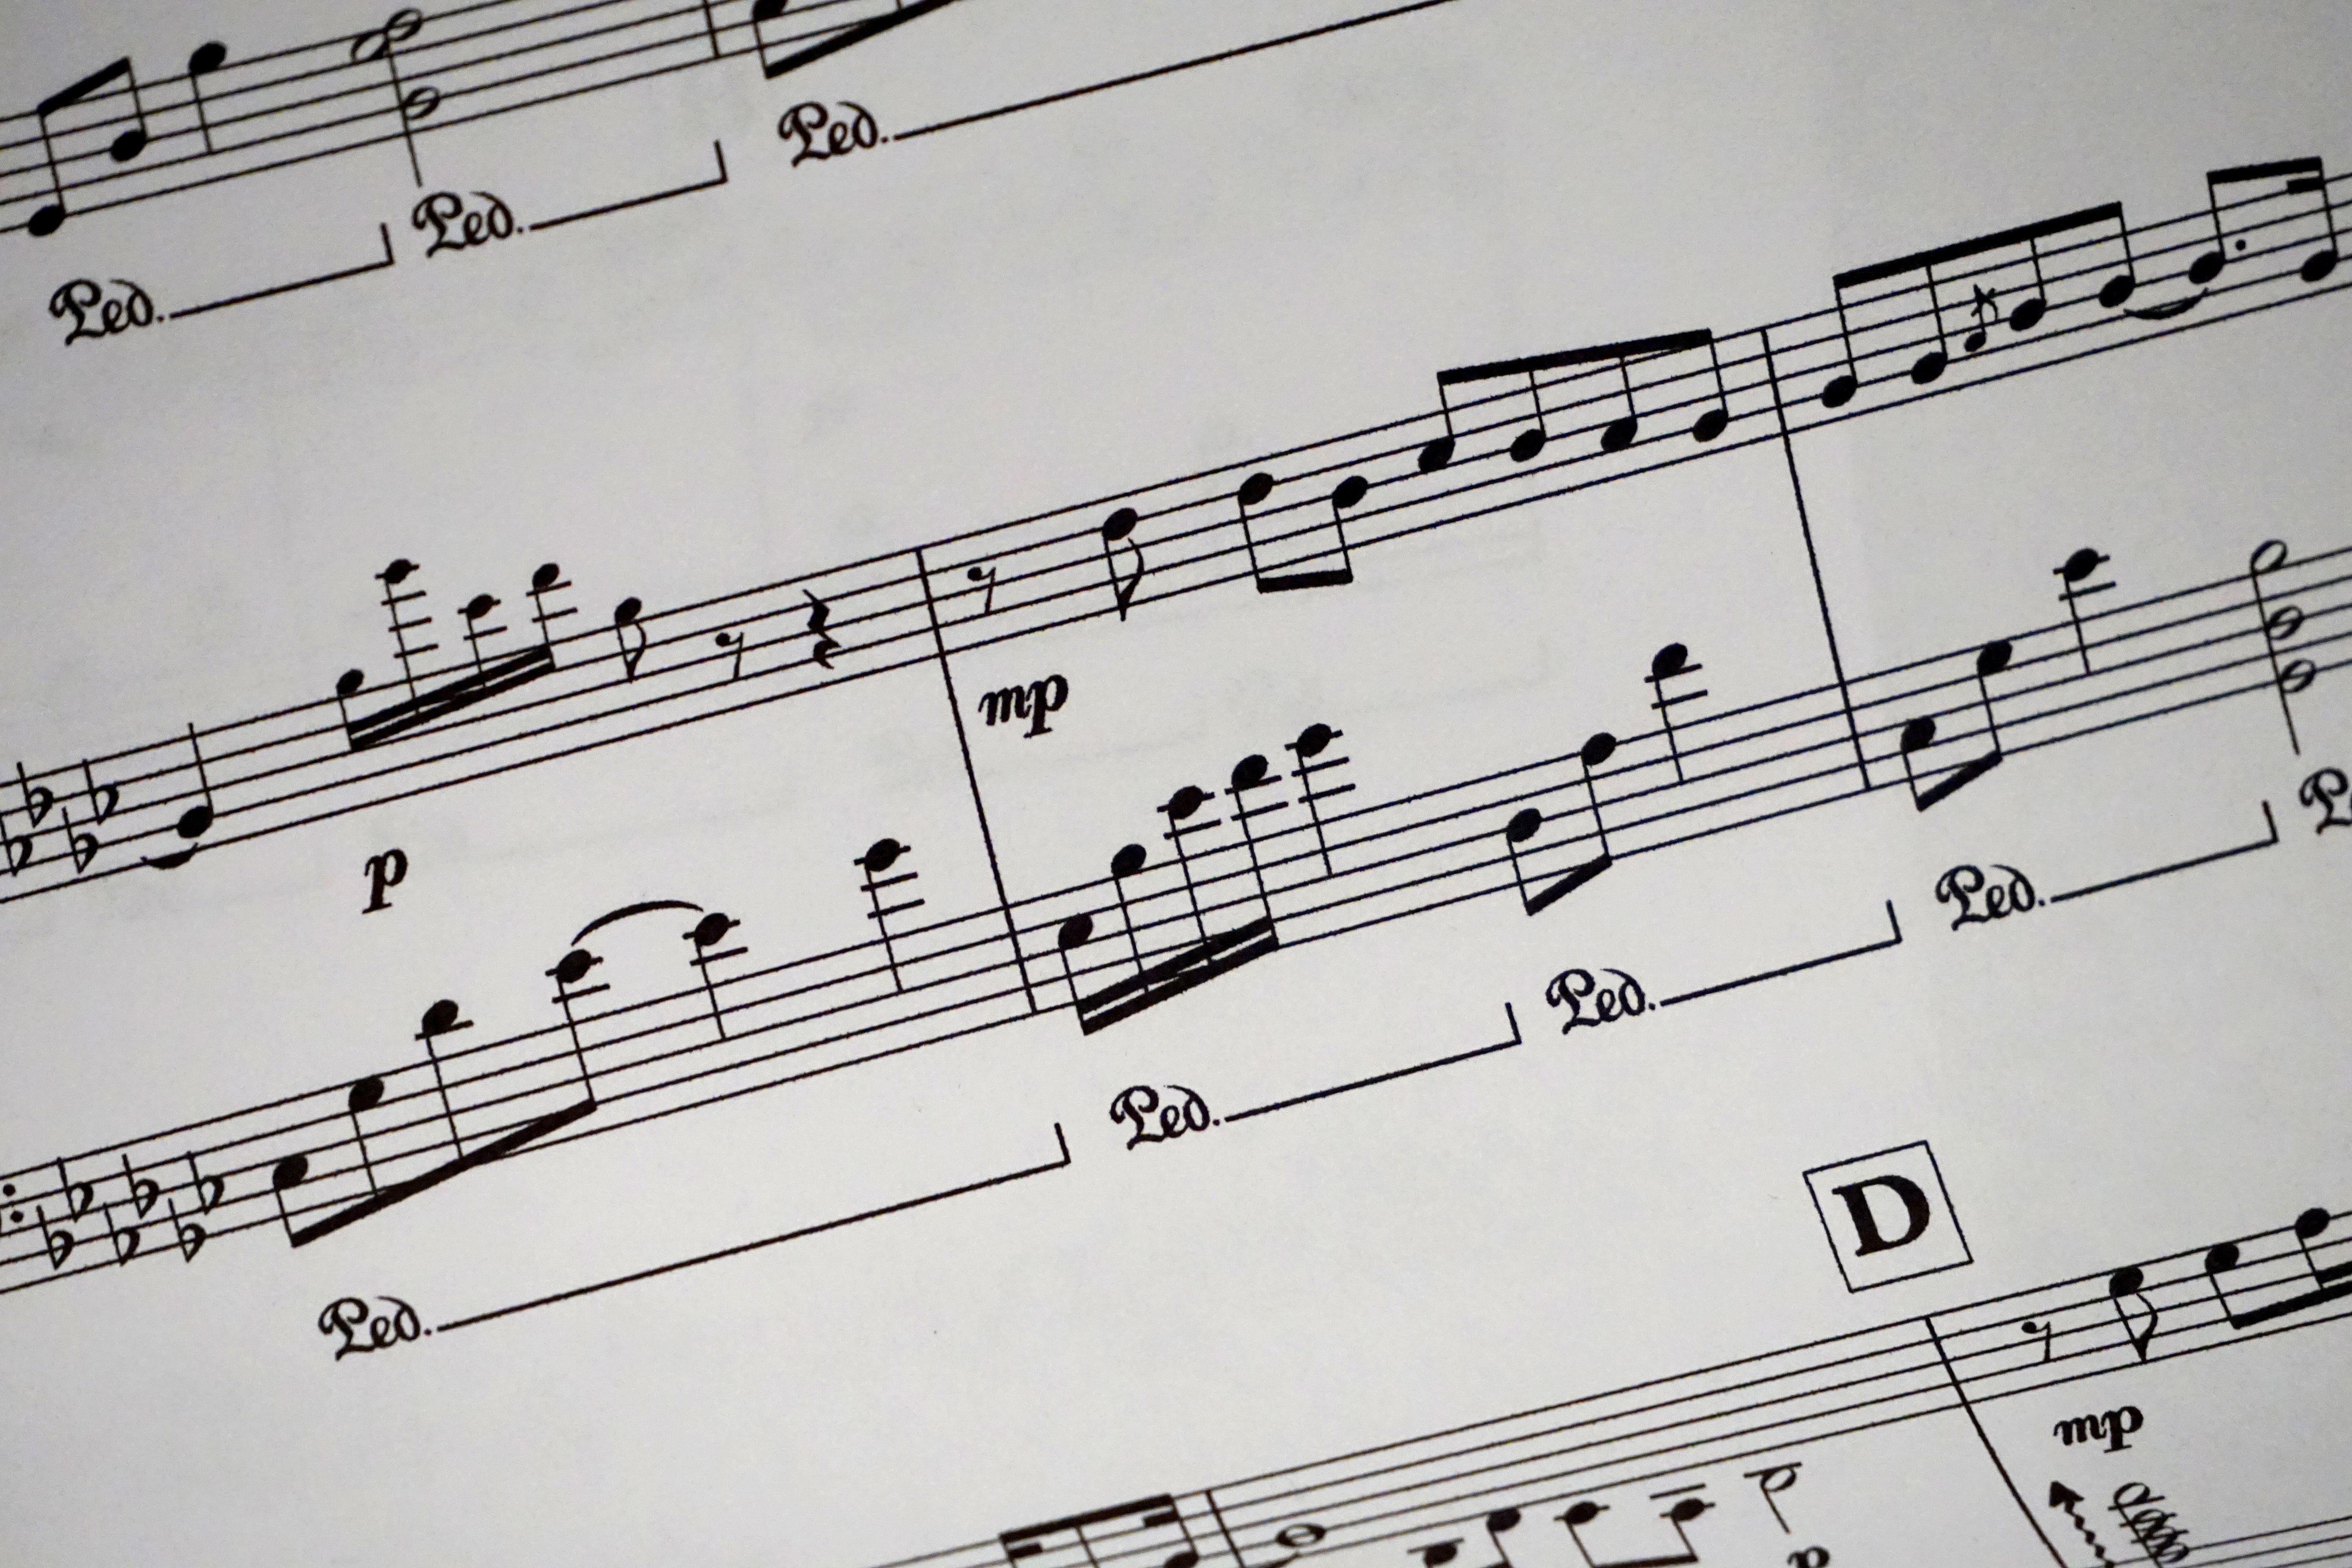 Musical notes on a score